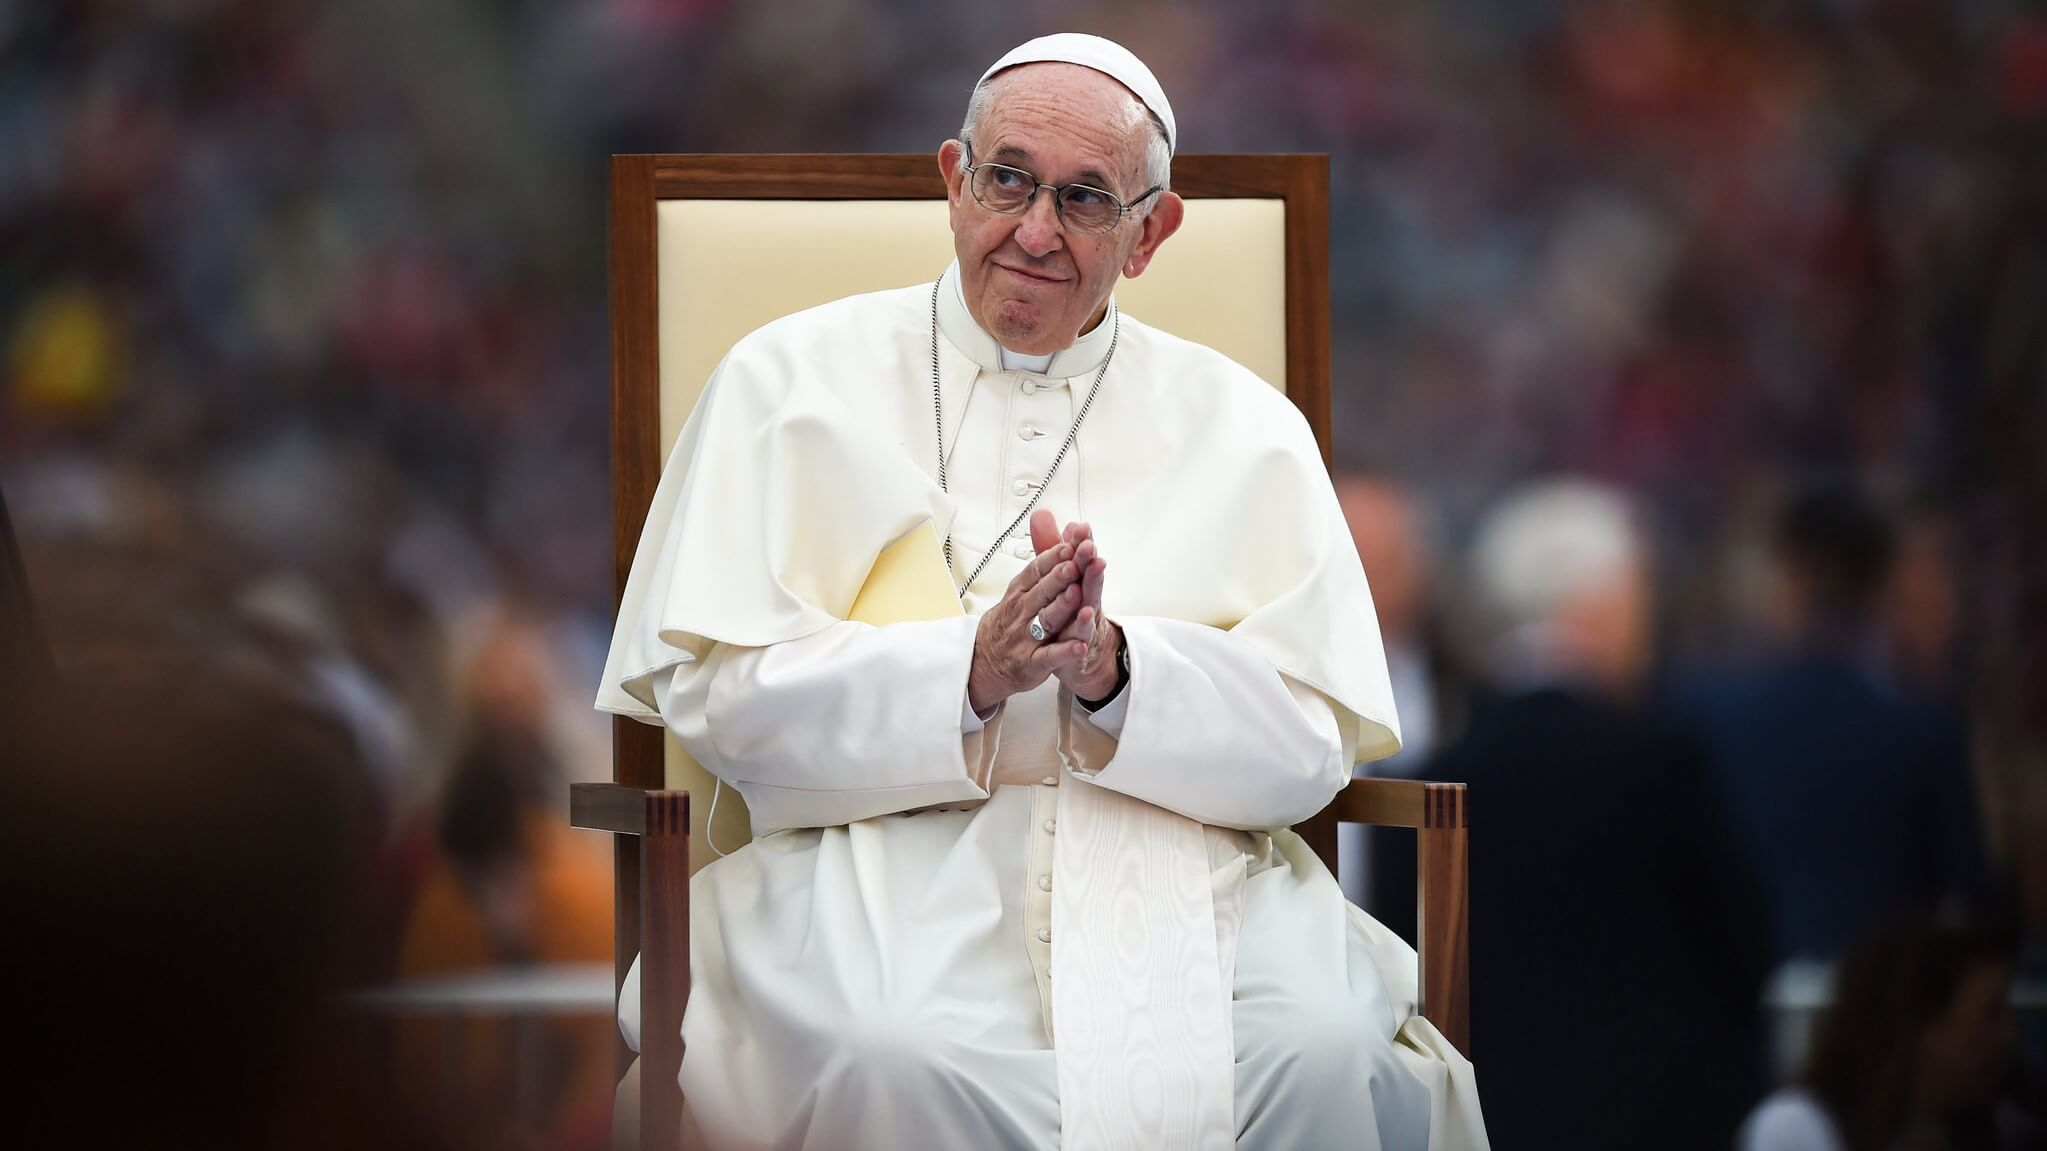 Pope France holding mass in the Vatican